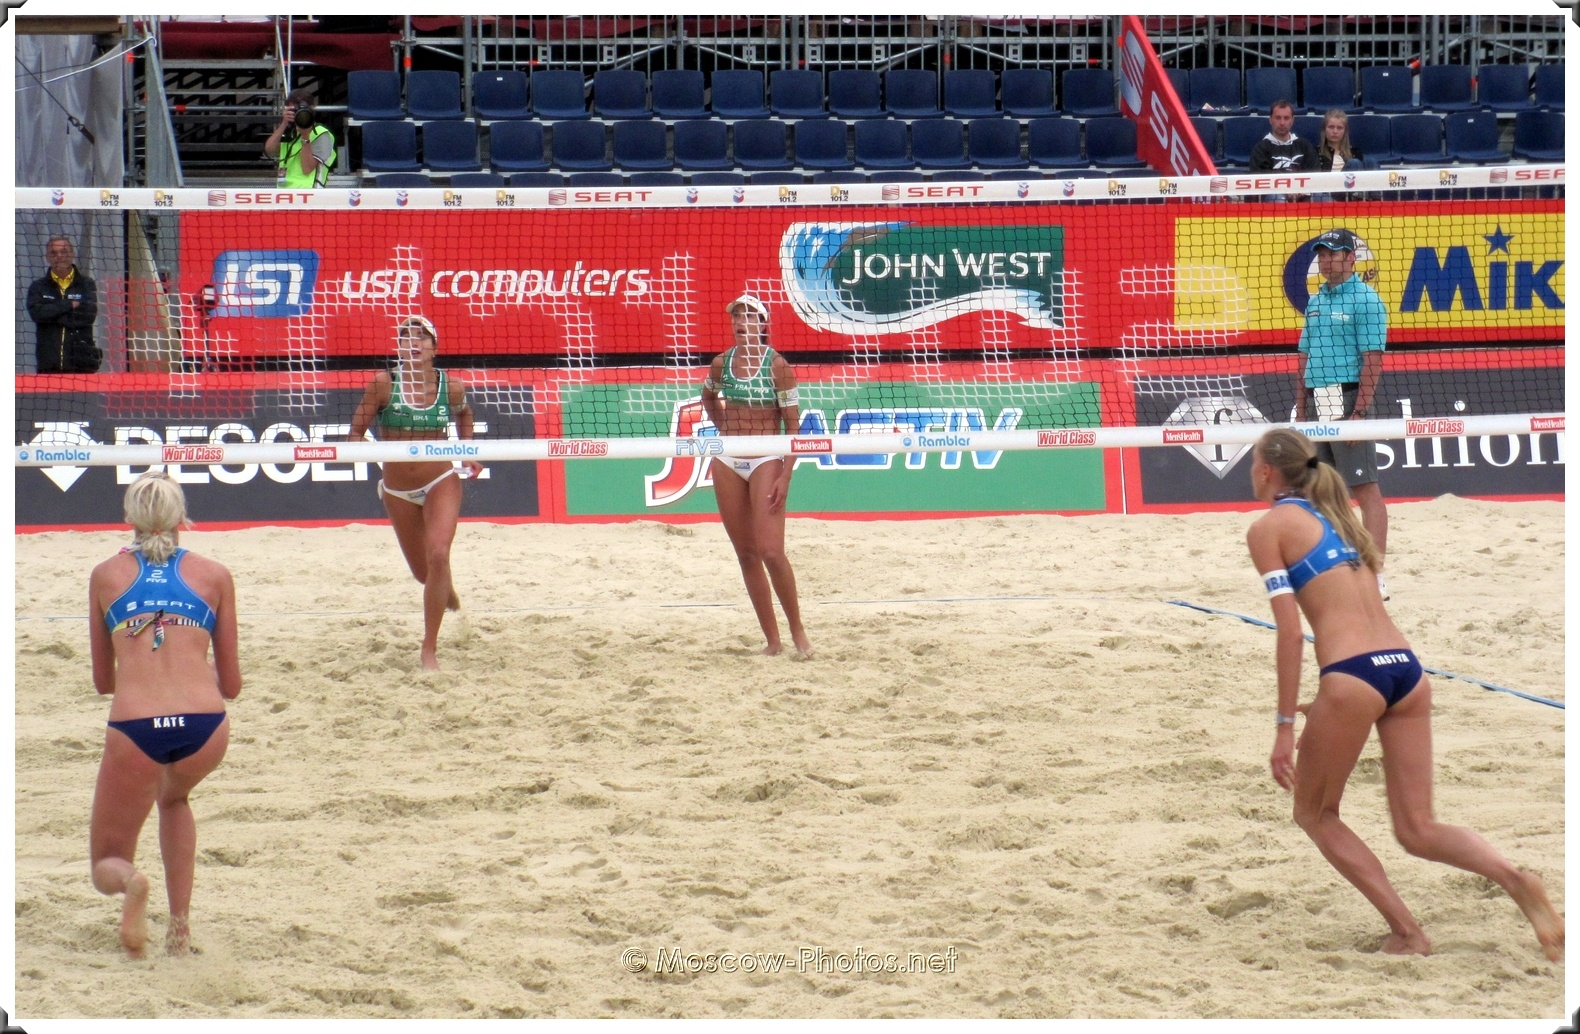 Russian Beach Volleyball Team vs Brazilian Beach Volleyball Team